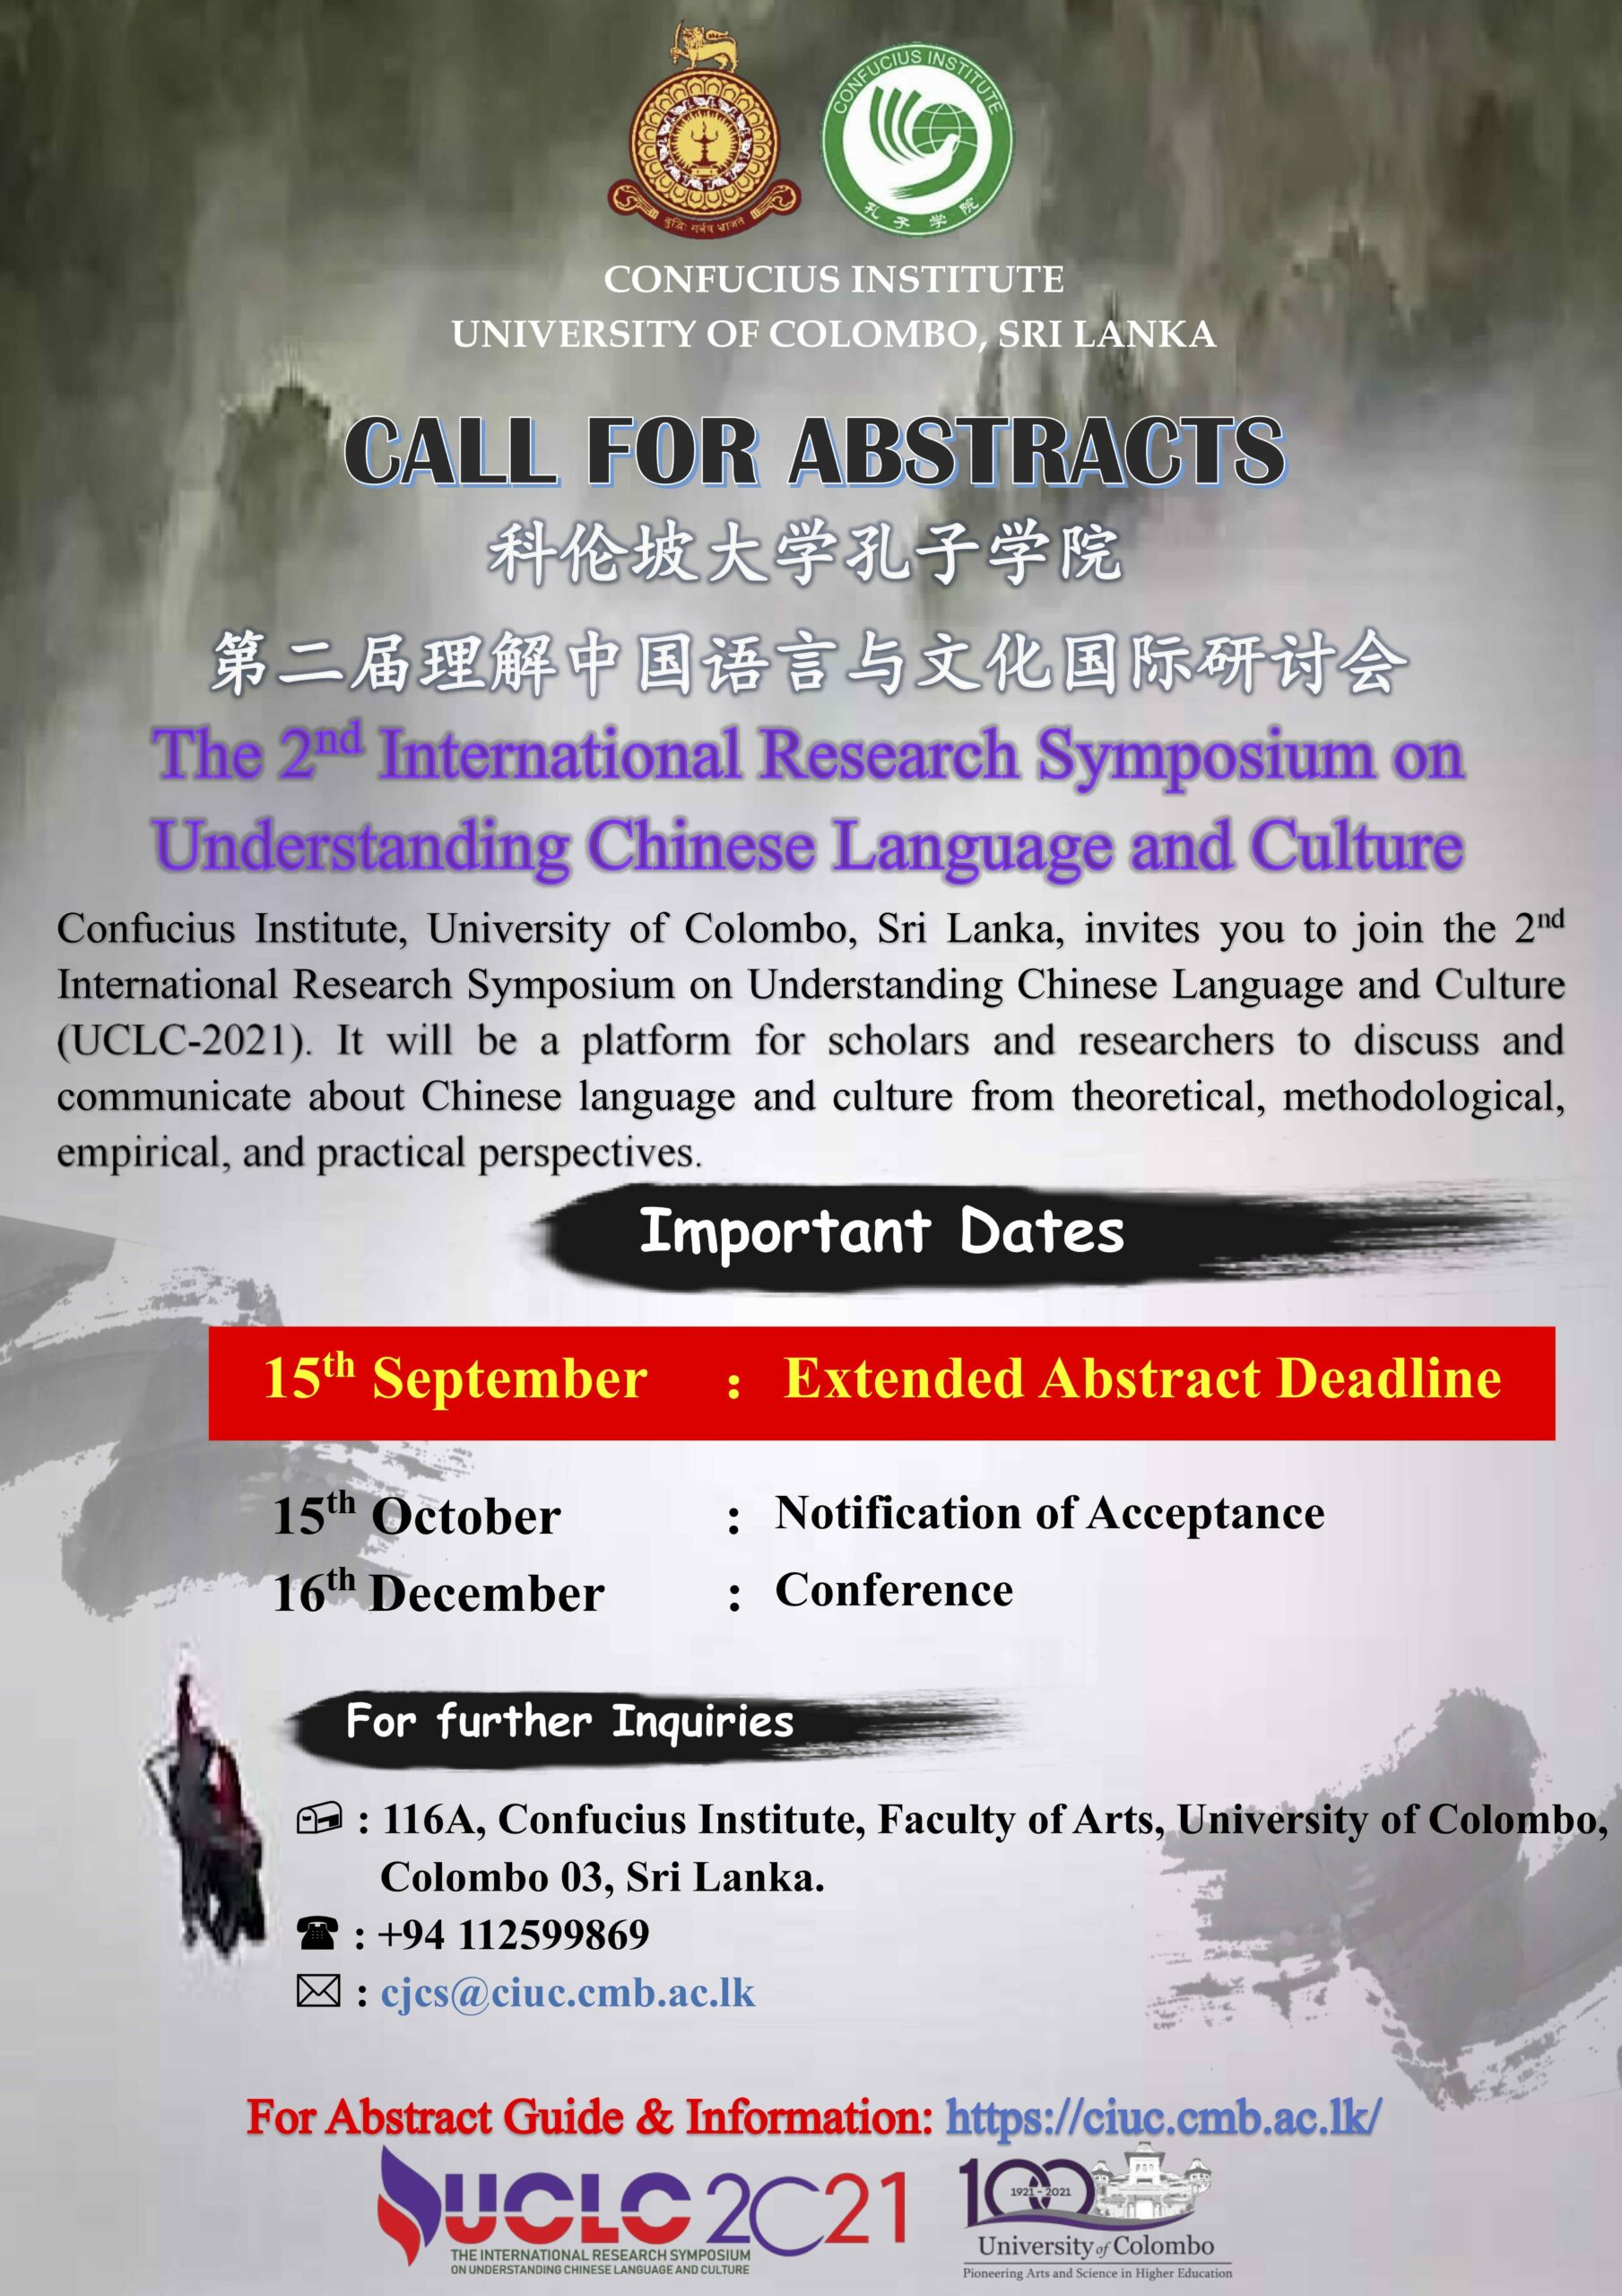 2nd International Research Symposium on 'Understanding Chinese Language & Culture'-16th Dec.